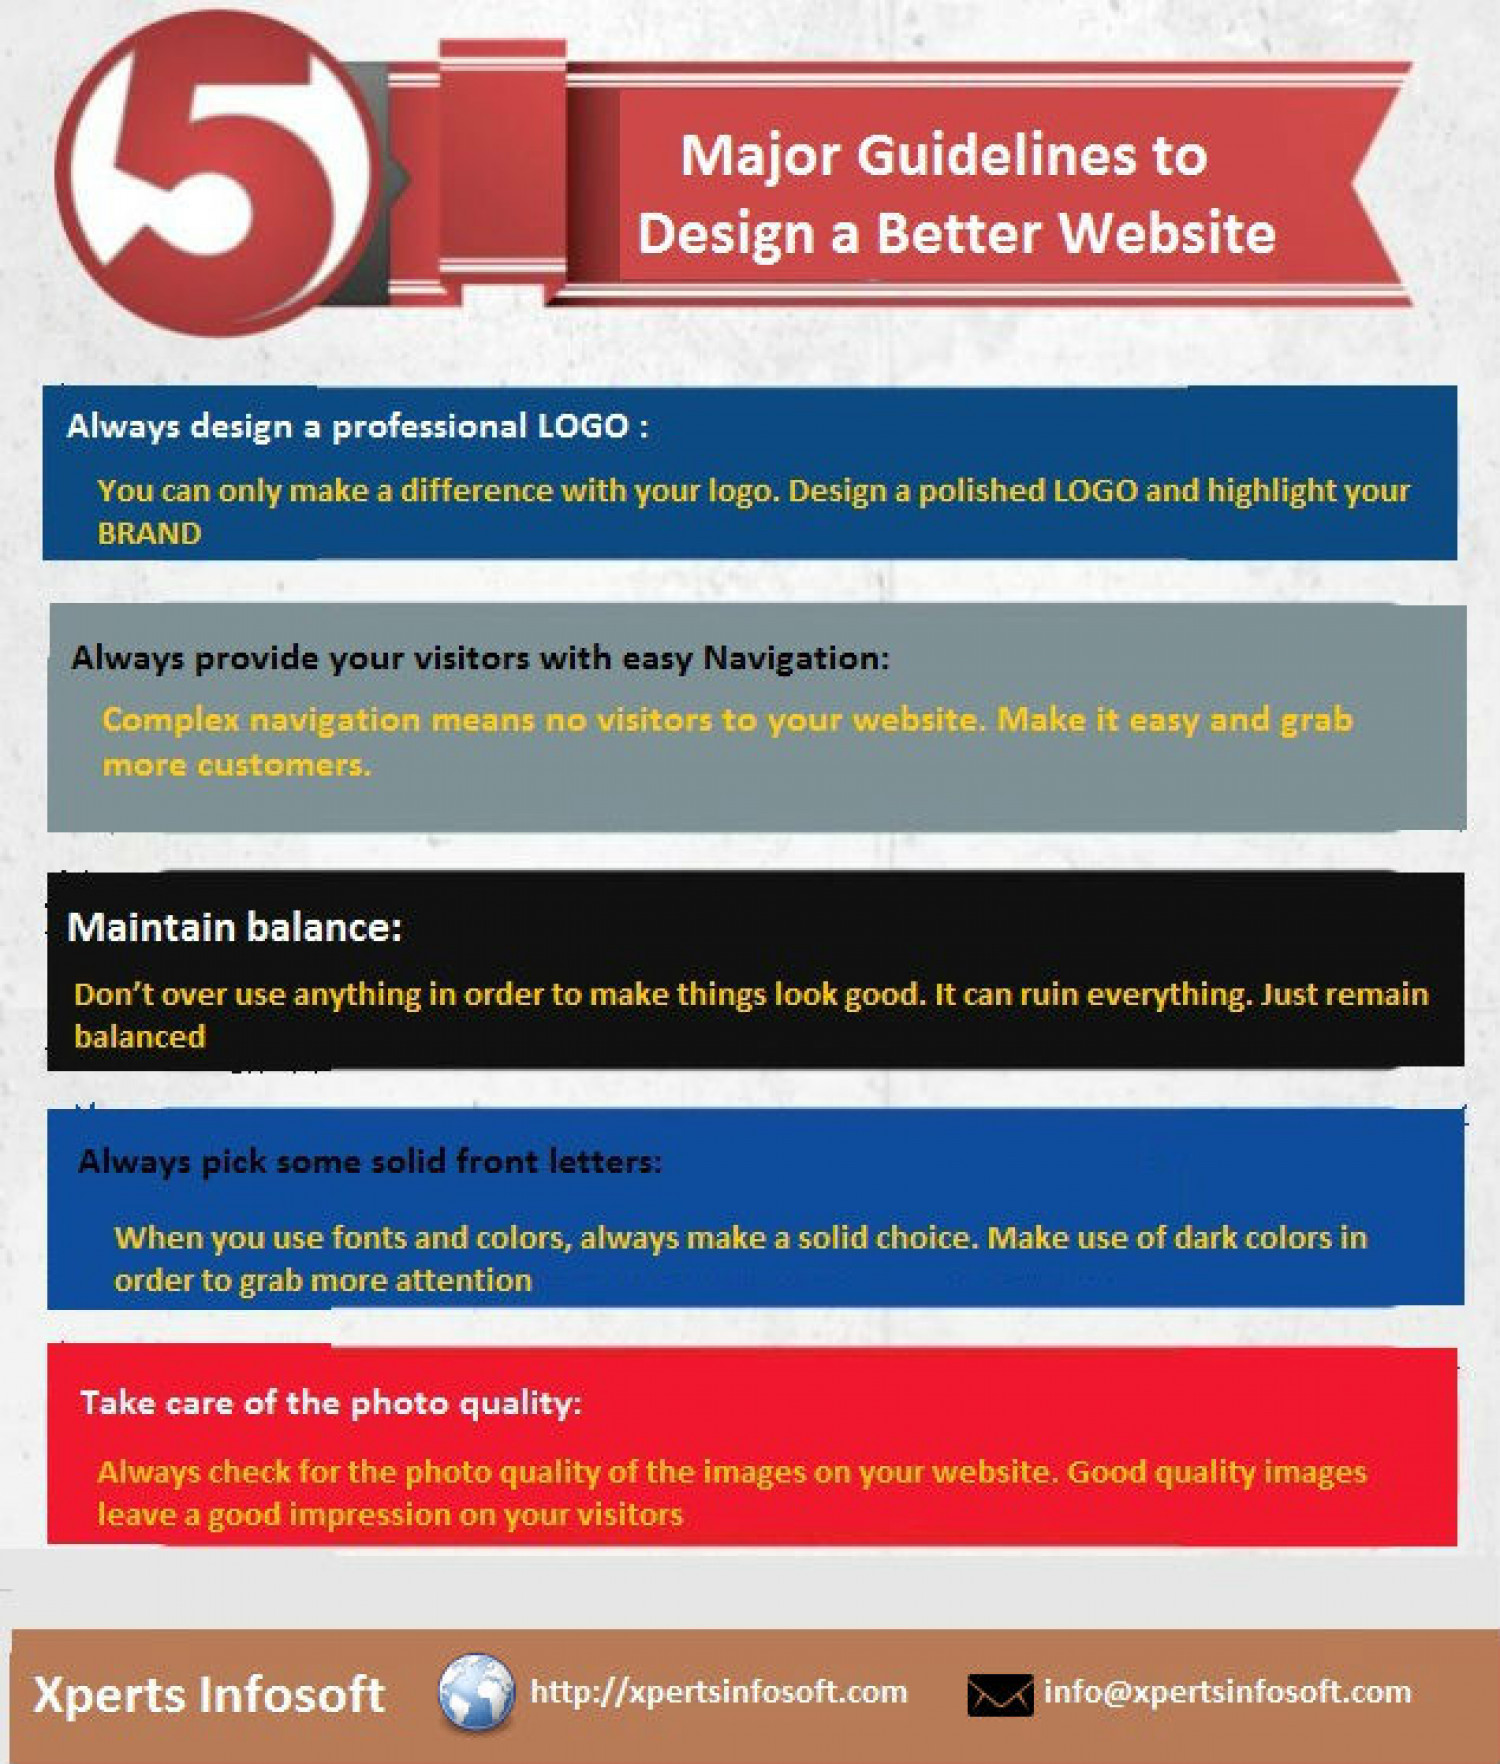 How to design a better website? Infographic